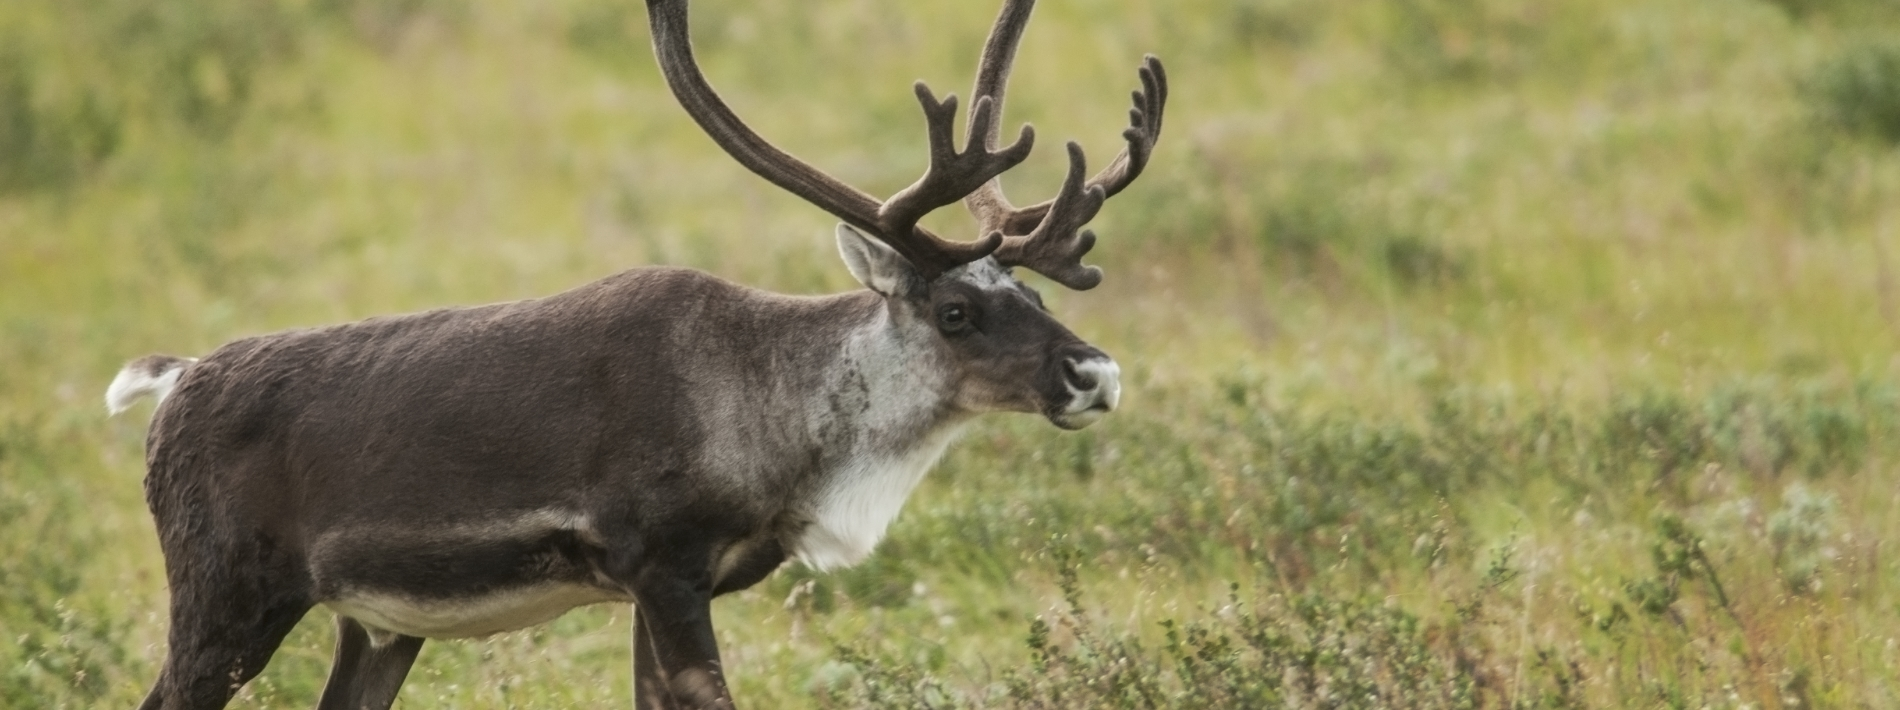 reindeer with grass